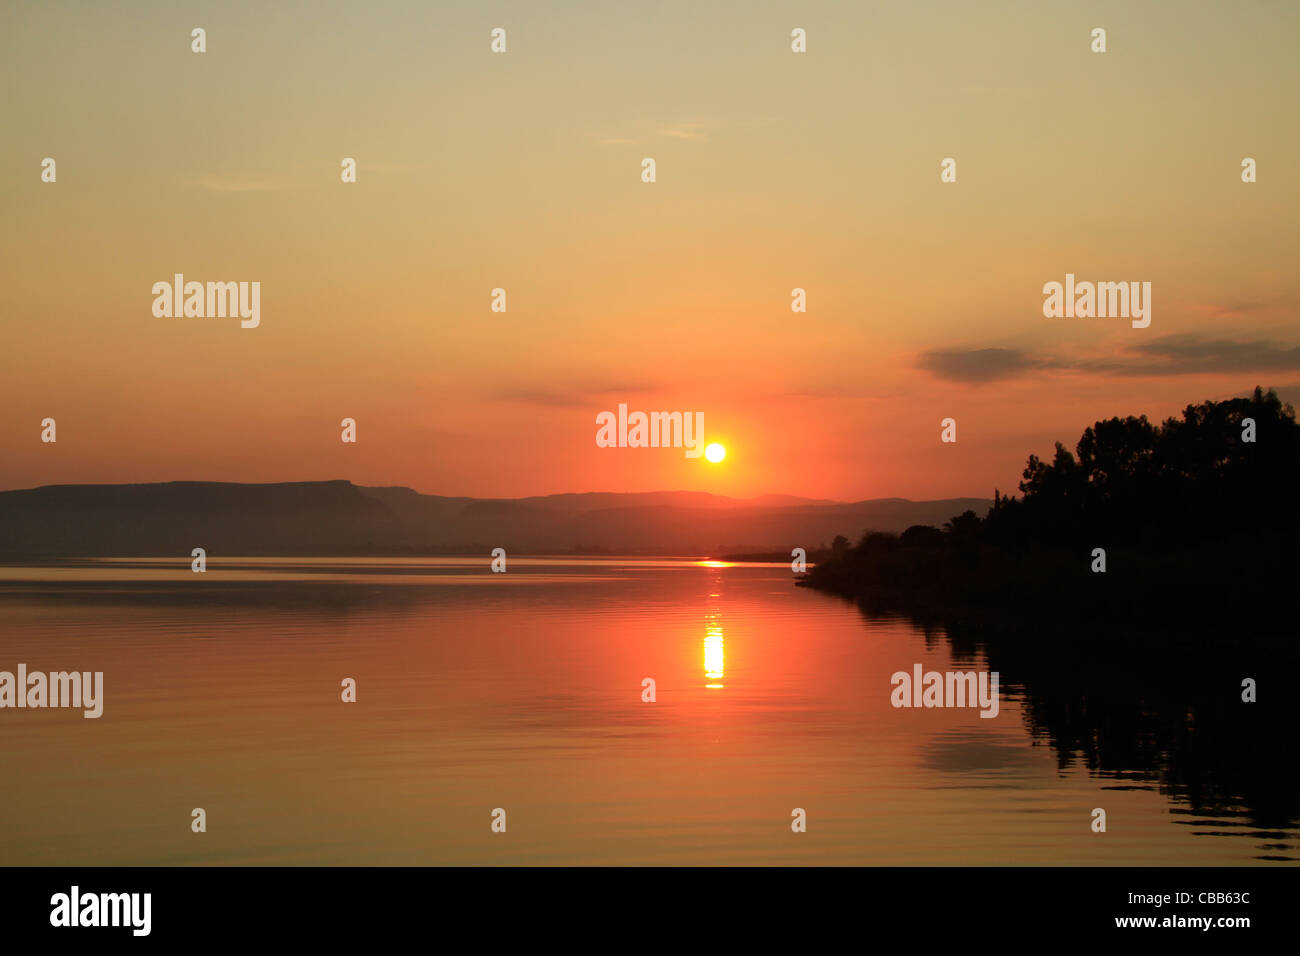 Israel, sunset over the Sea of Galilee at Capernaum Stock Photo